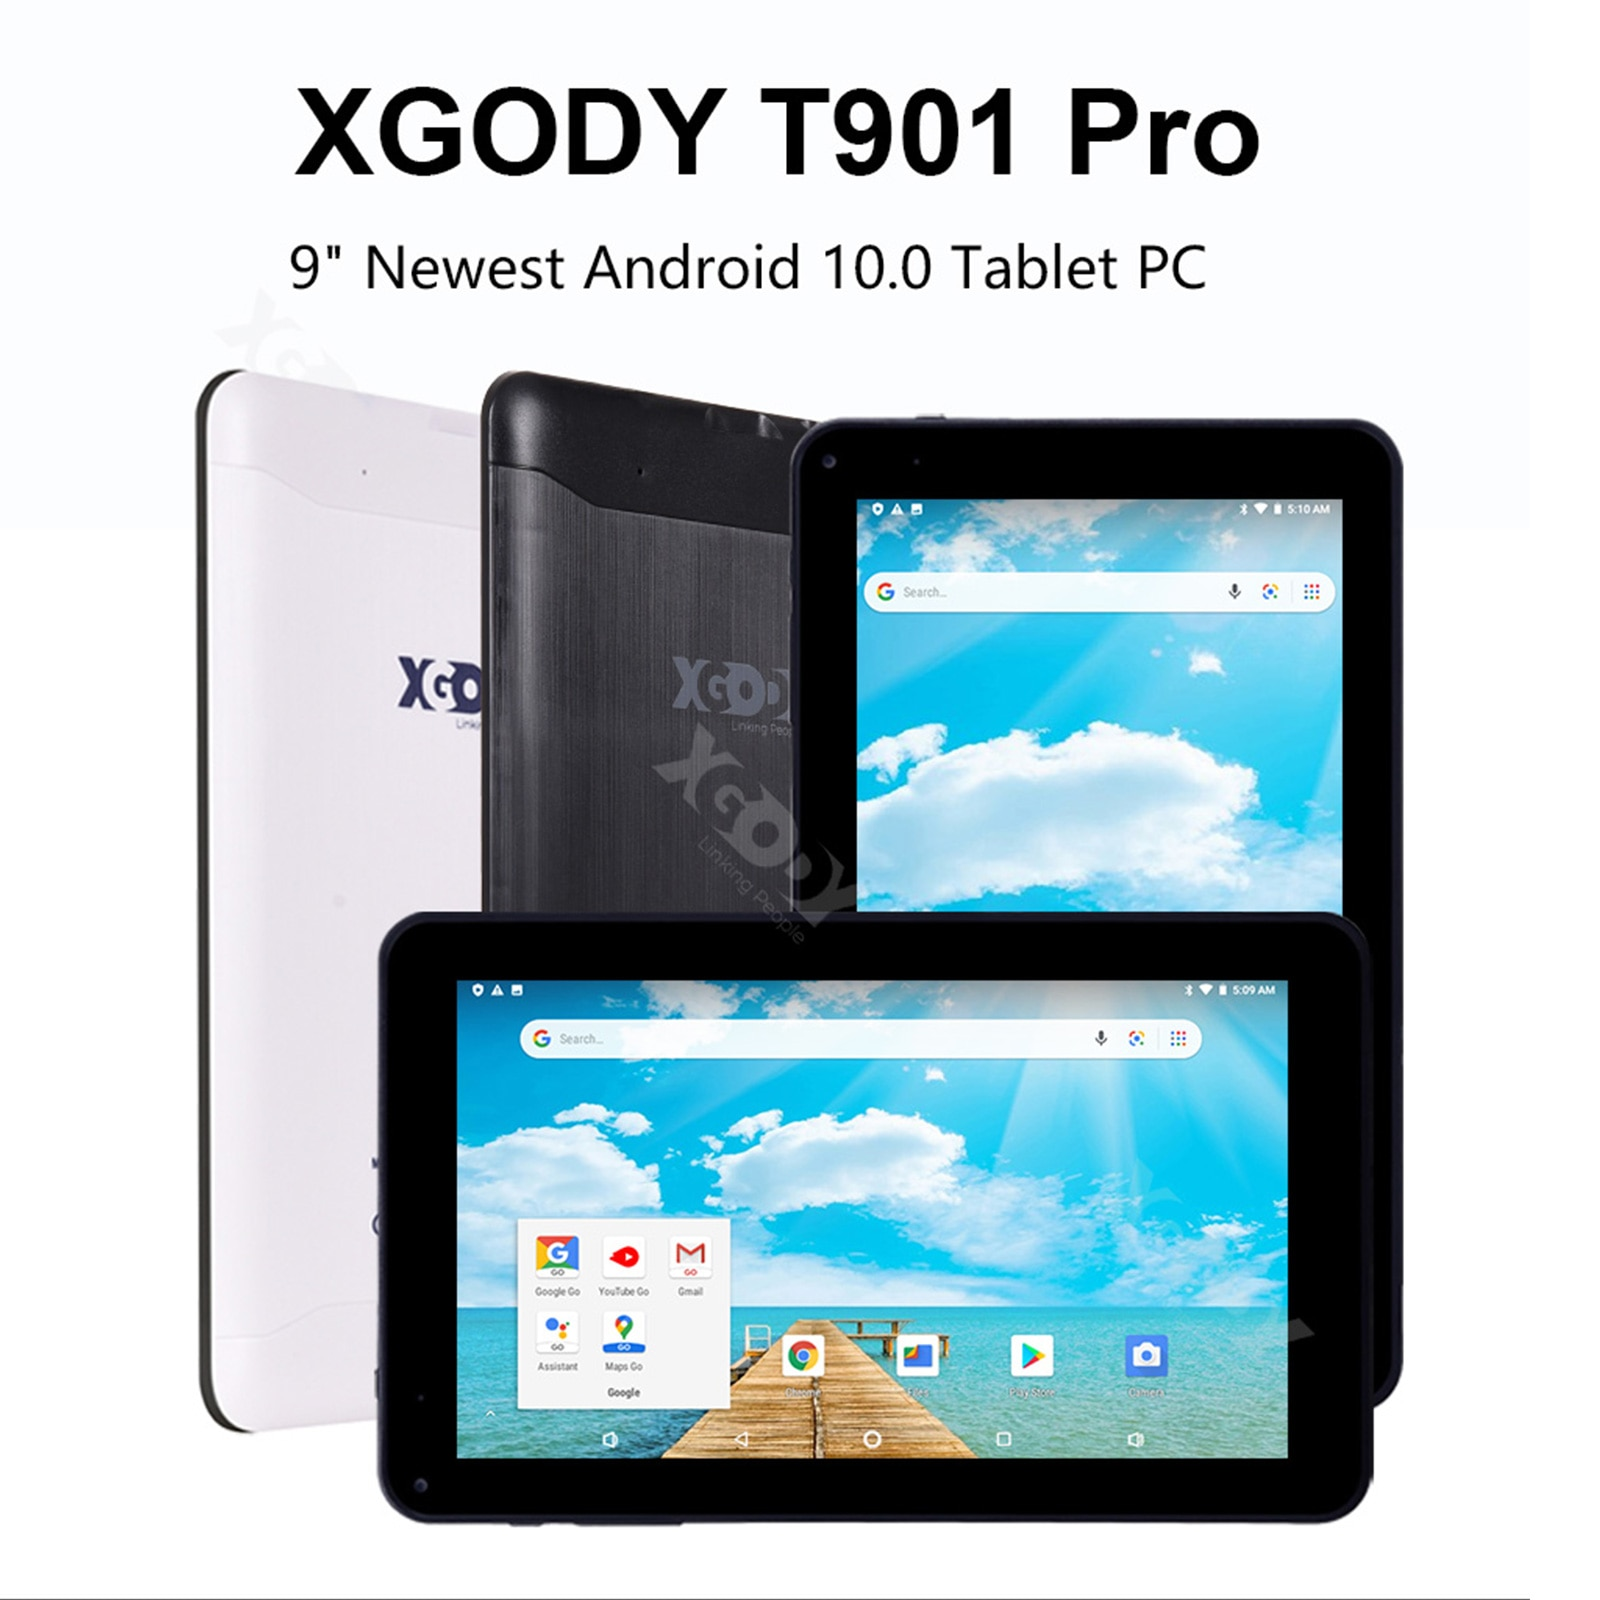 tablet Android 9.0 Octa Core 3GB RAM 32GB ROM 3200mA WiFi, 9-inchsuitable for children's education